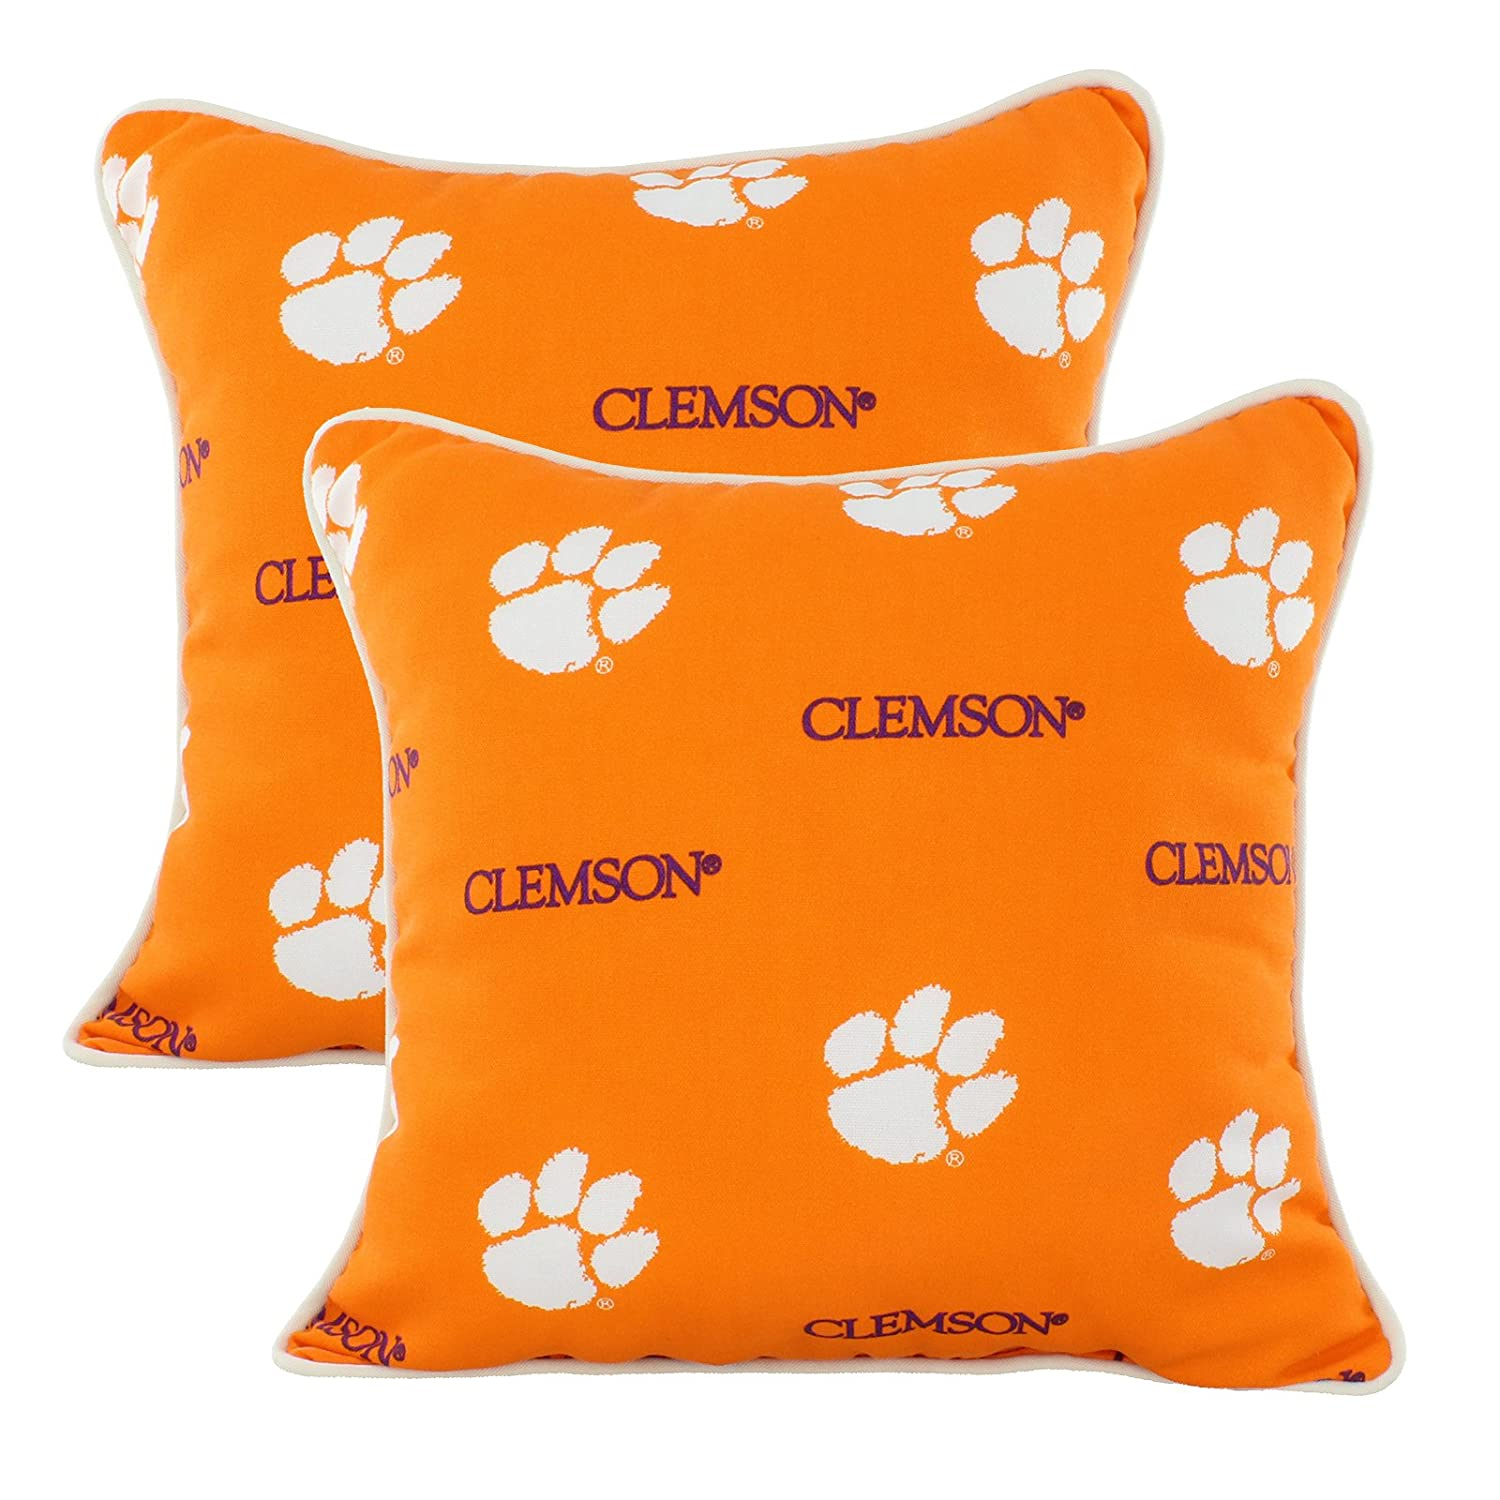 College Covers Clemson Tigers Outdoor Decorative Pillow Pair - 2 16 x 16 Pillows Orange